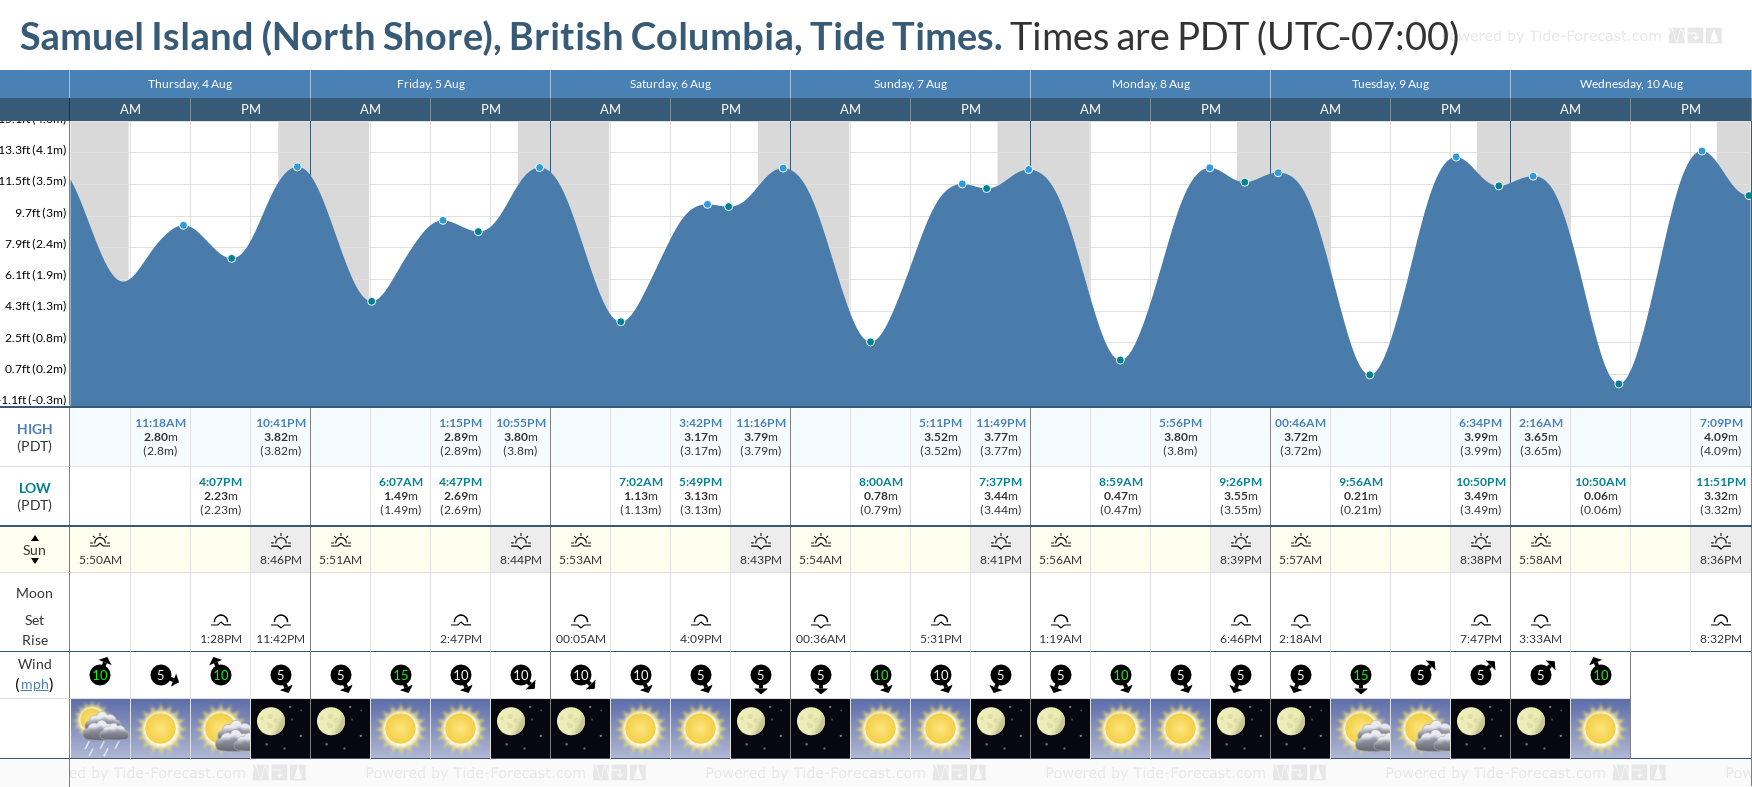 Samuel Island (North Shore), British Columbia Tide Chart including high and low tide tide times for the next 7 days